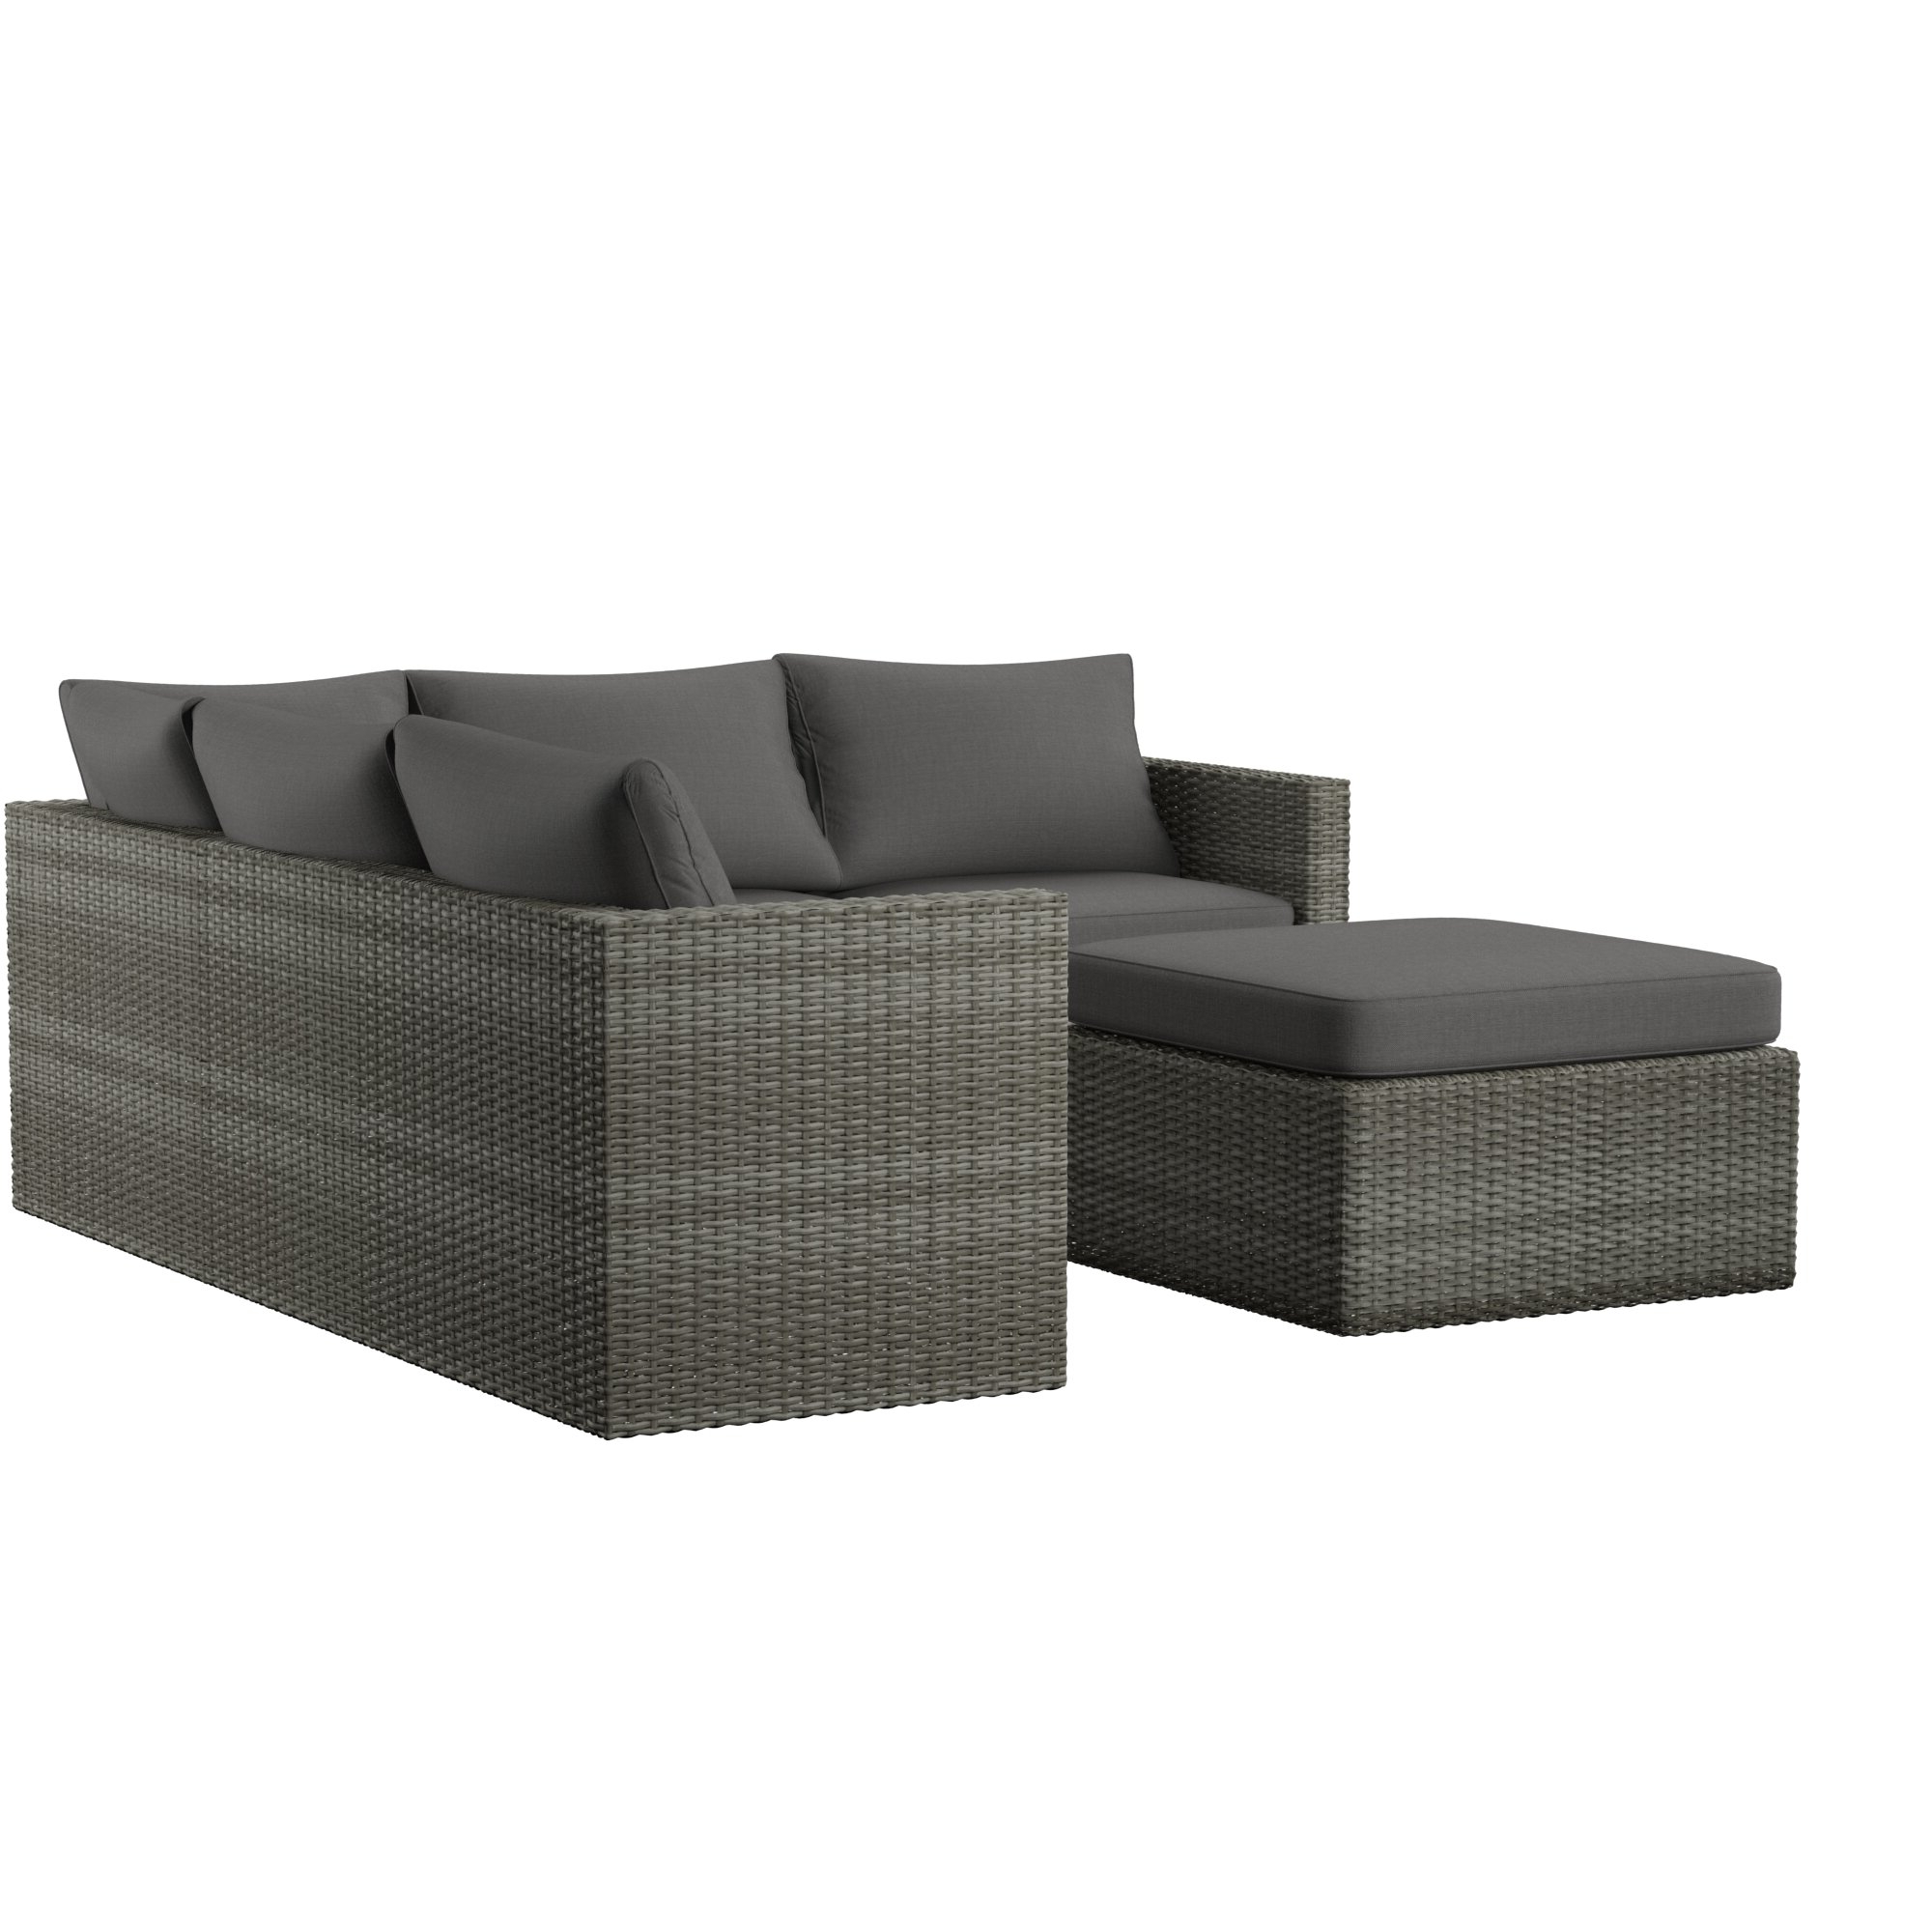 Popular Burruss Patio Sectionals With Cushions For Lorentzen Patio Sectional With Cushions & Reviews (View 9 of 25)